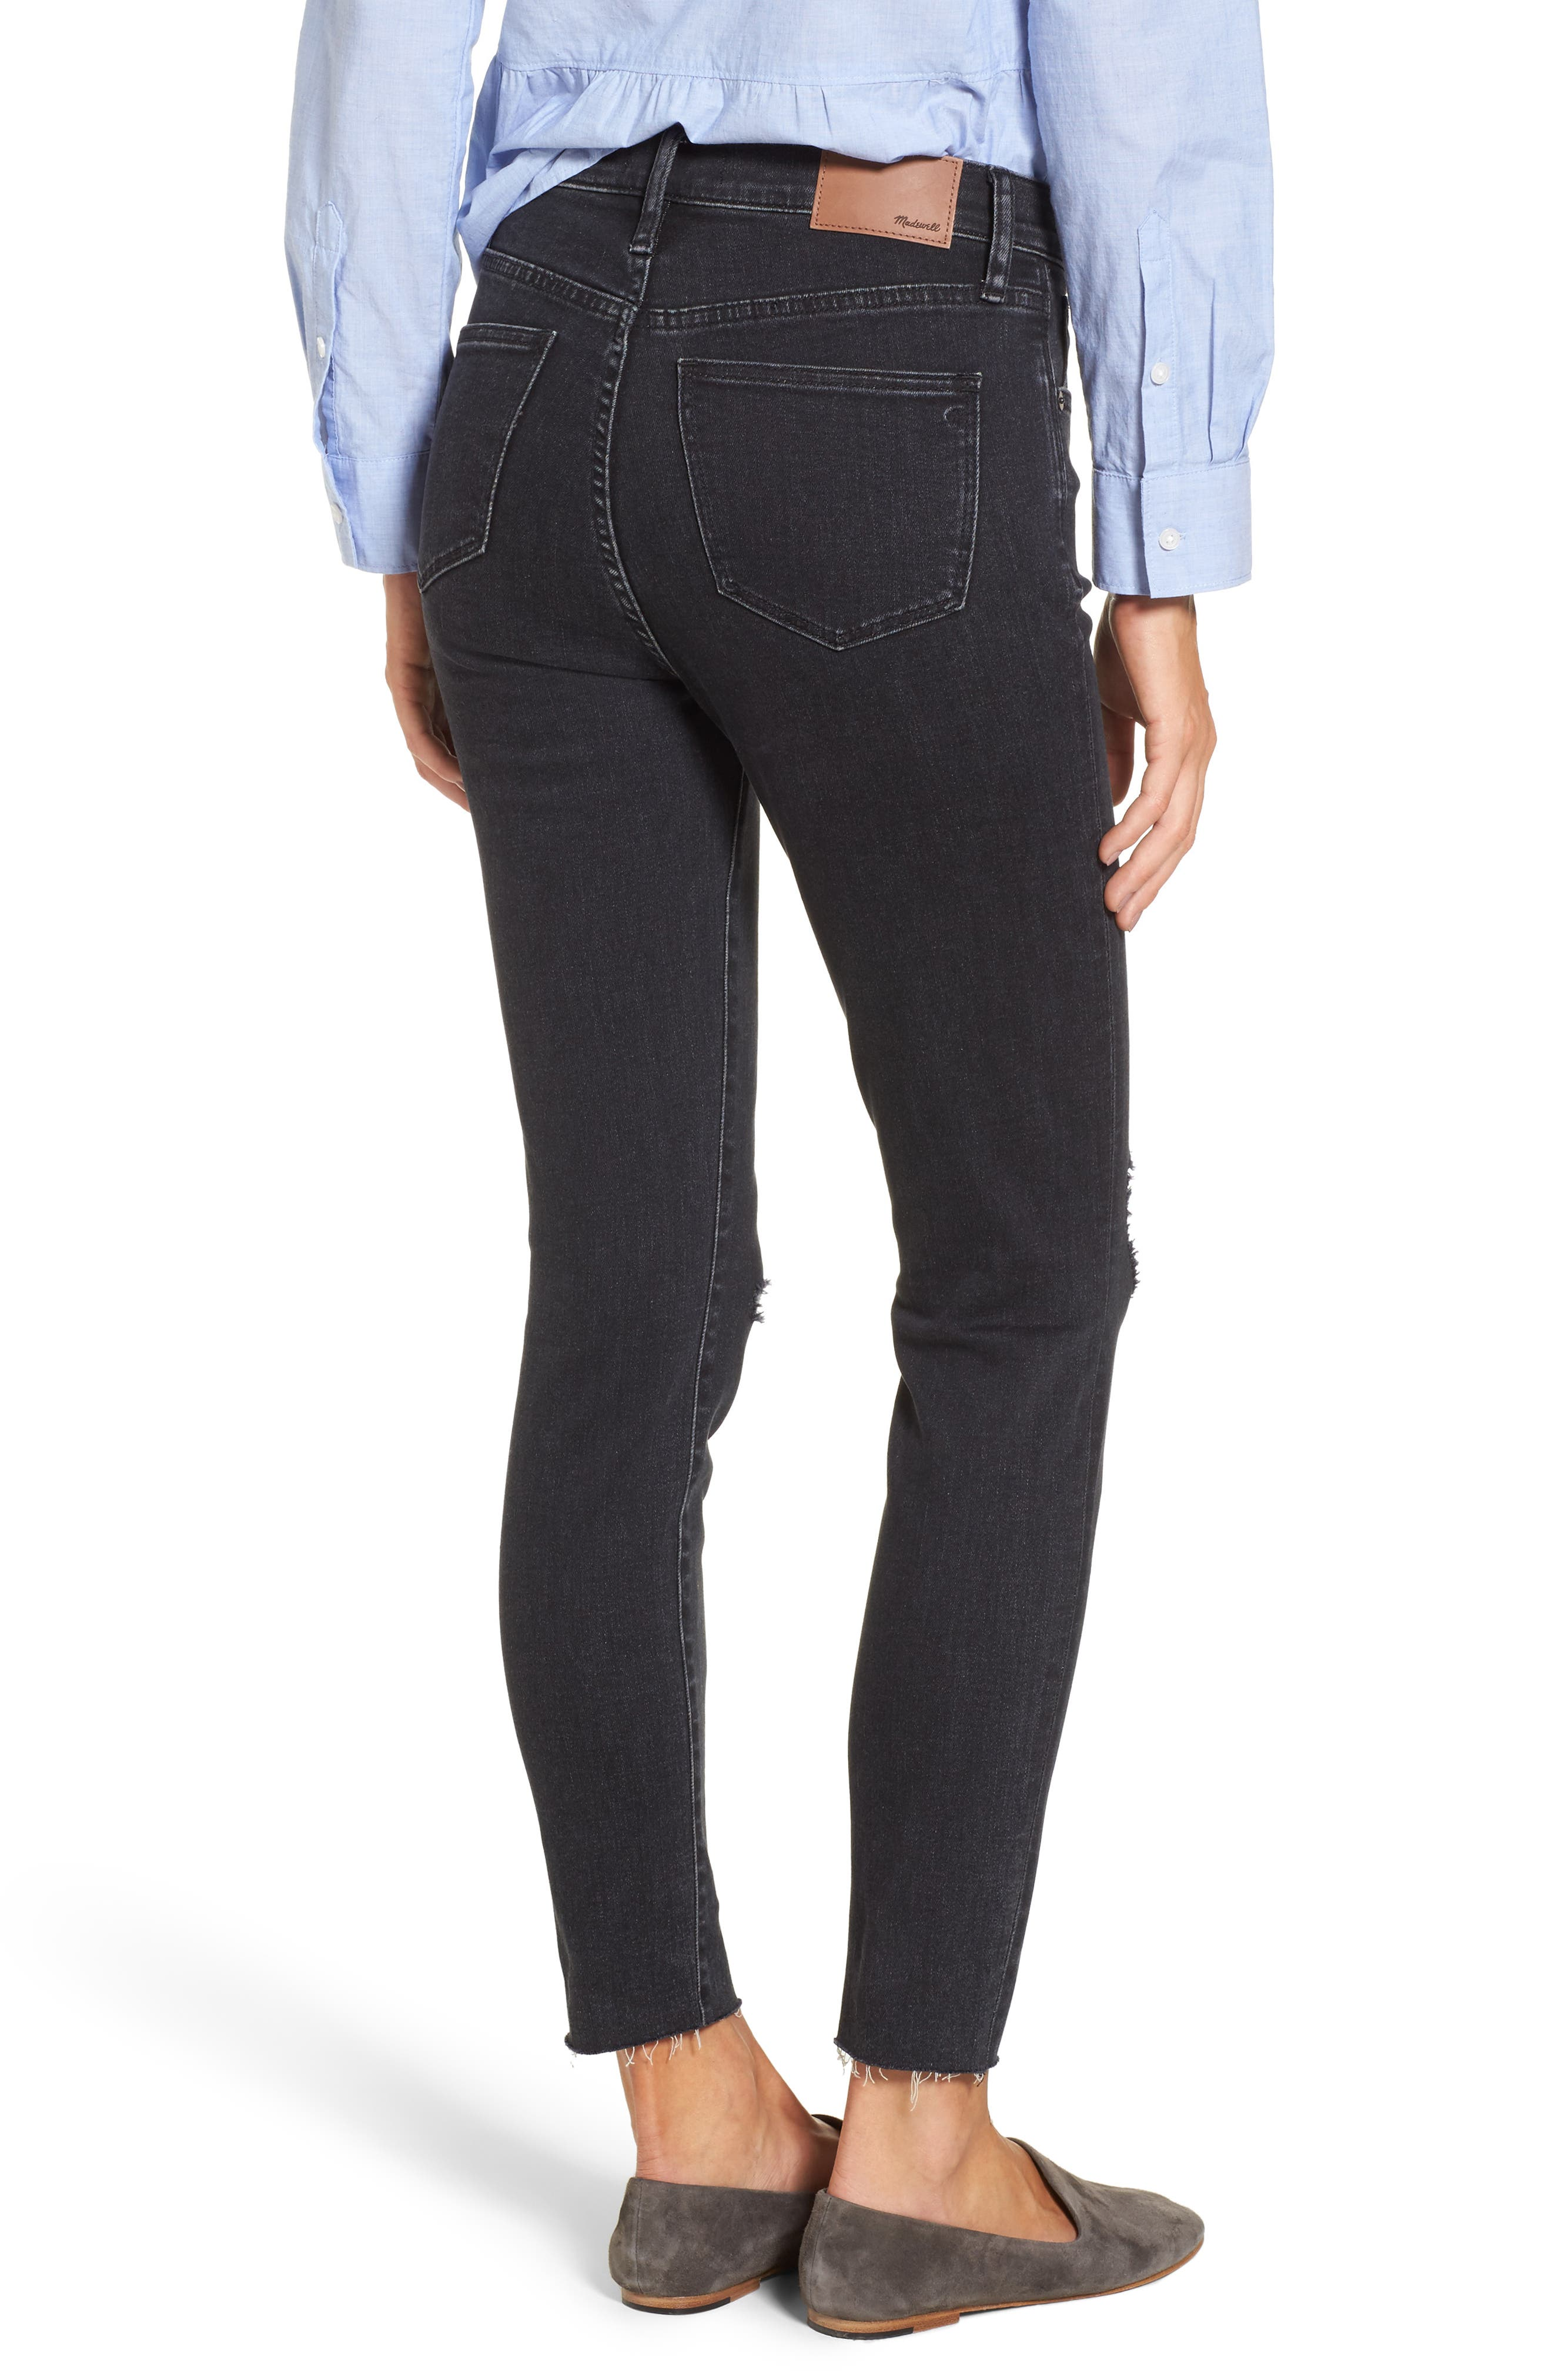 Alternate Image 3  - Madewell 9-Inch High Rise Ripped Skinny Jeans (Ruth)